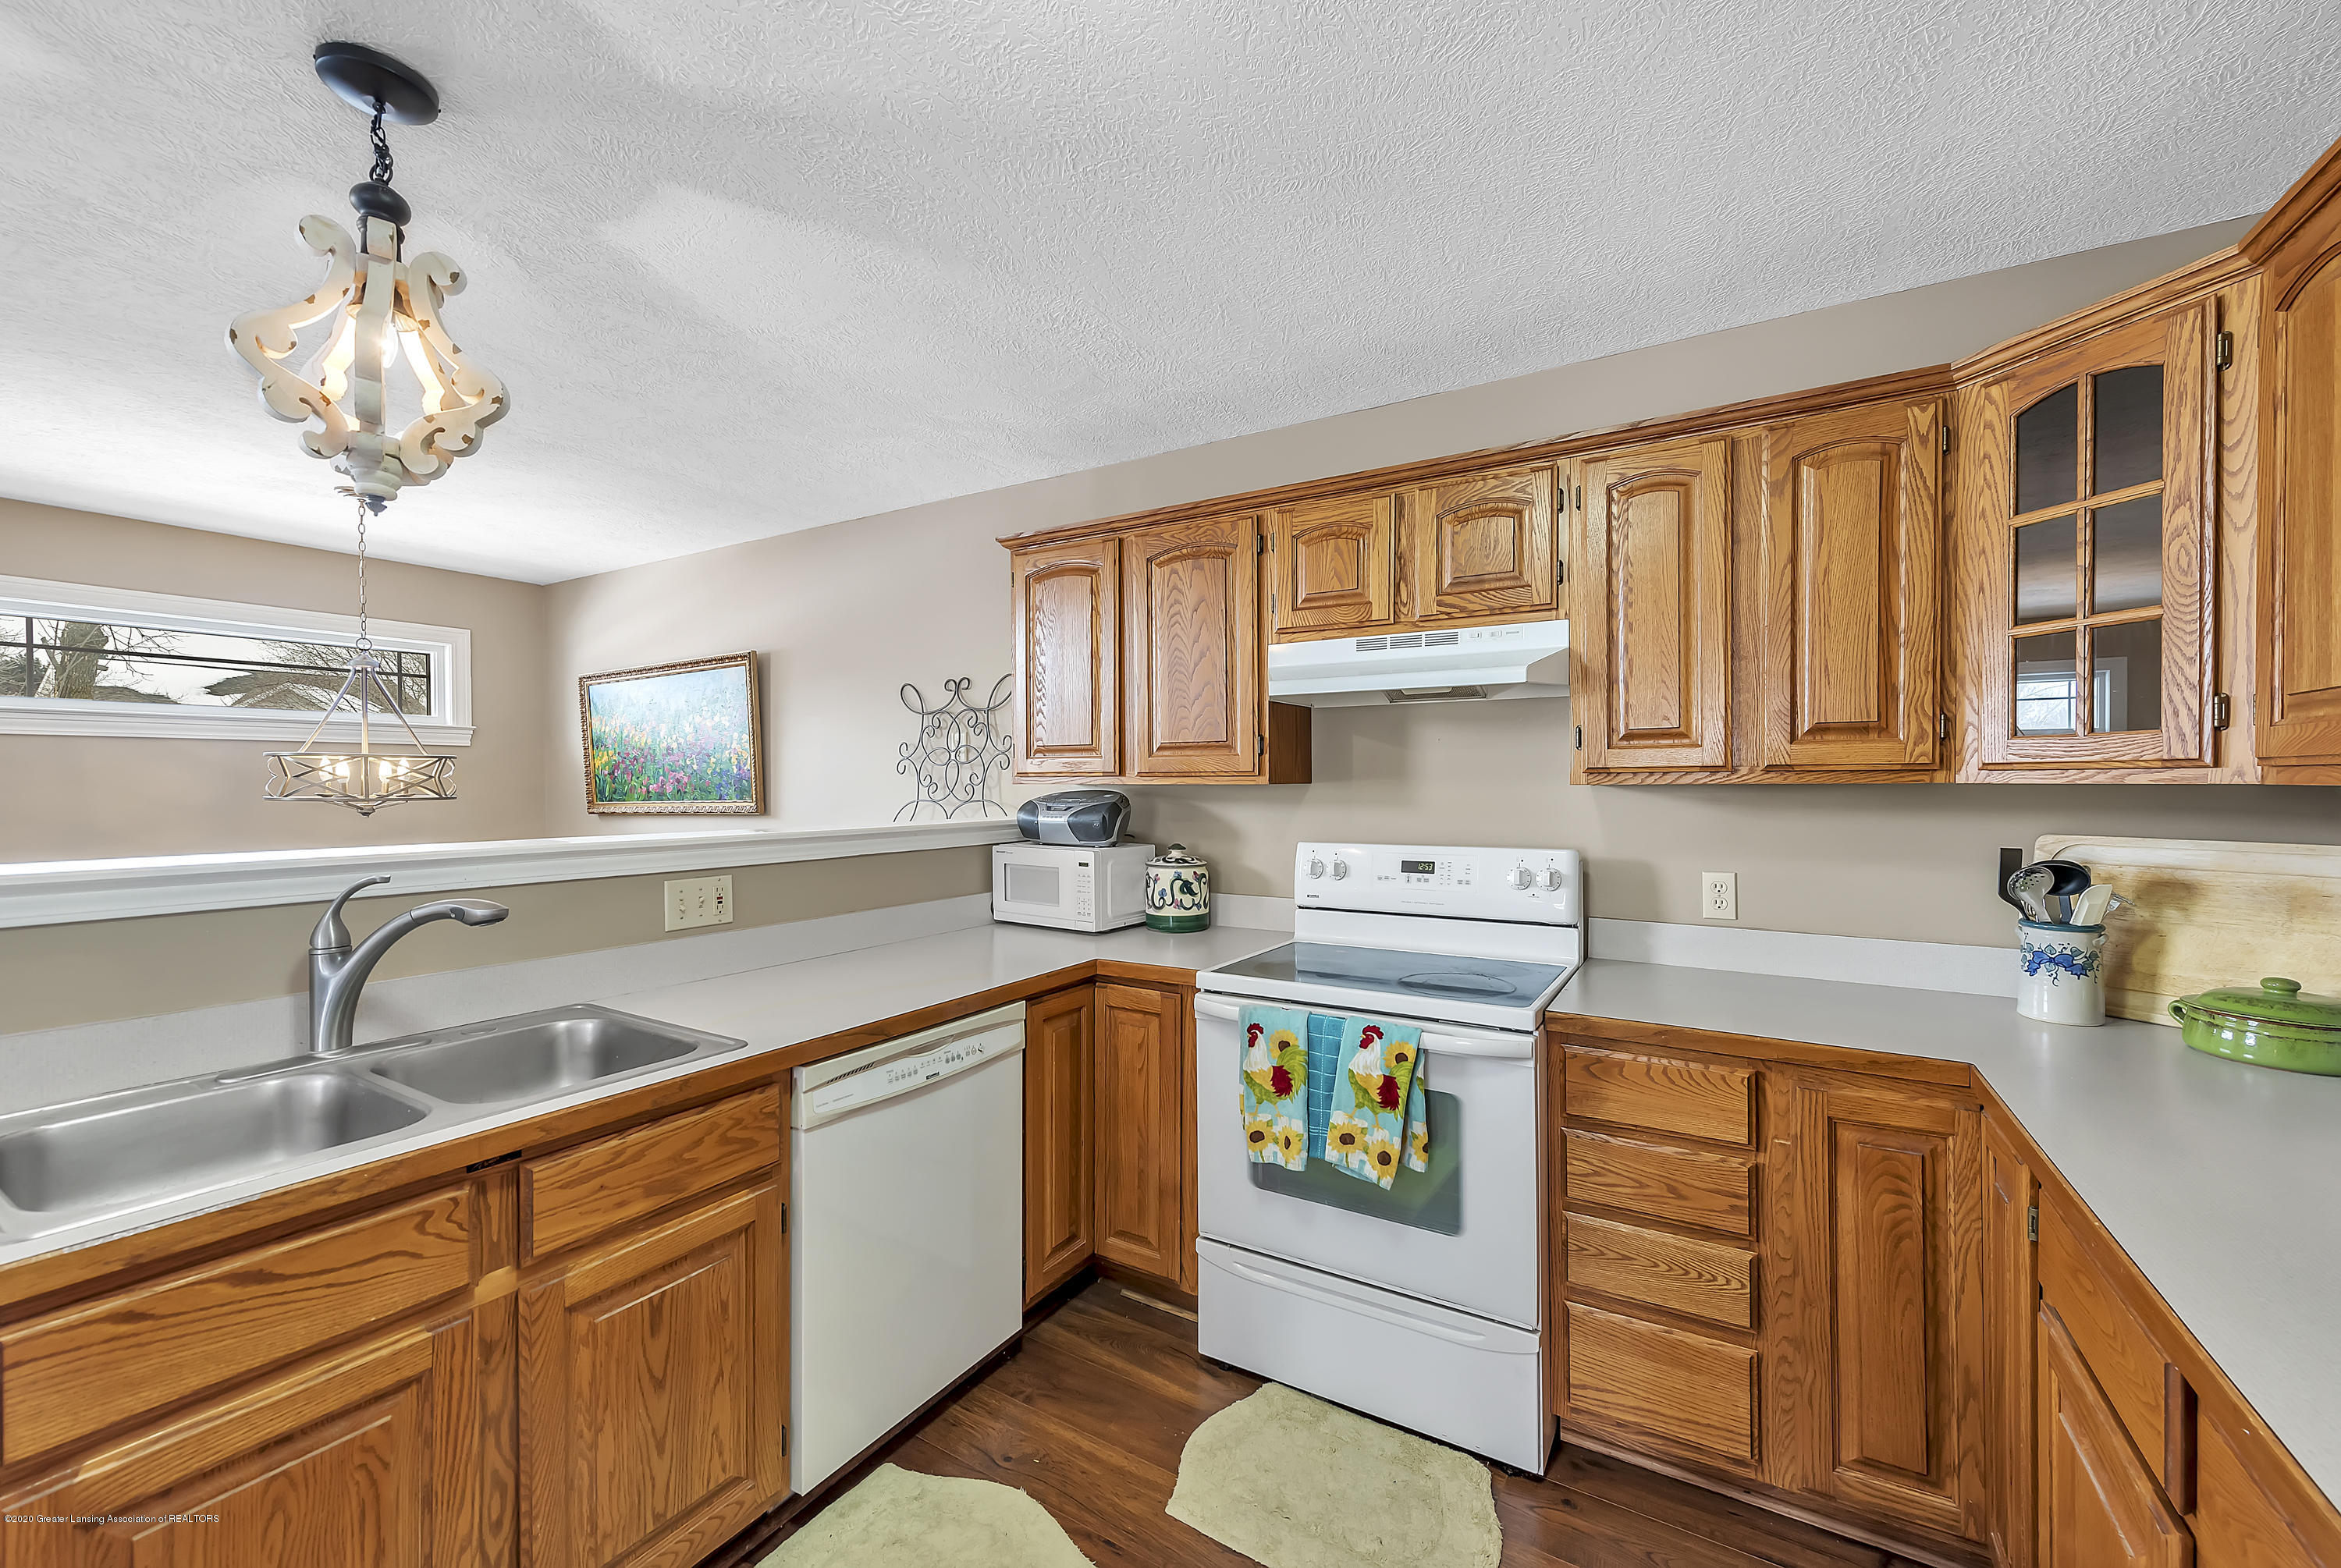 2450 Featherstone Dr - 2450-Featherstone-Dr-WindowStill-Real-Es - 11